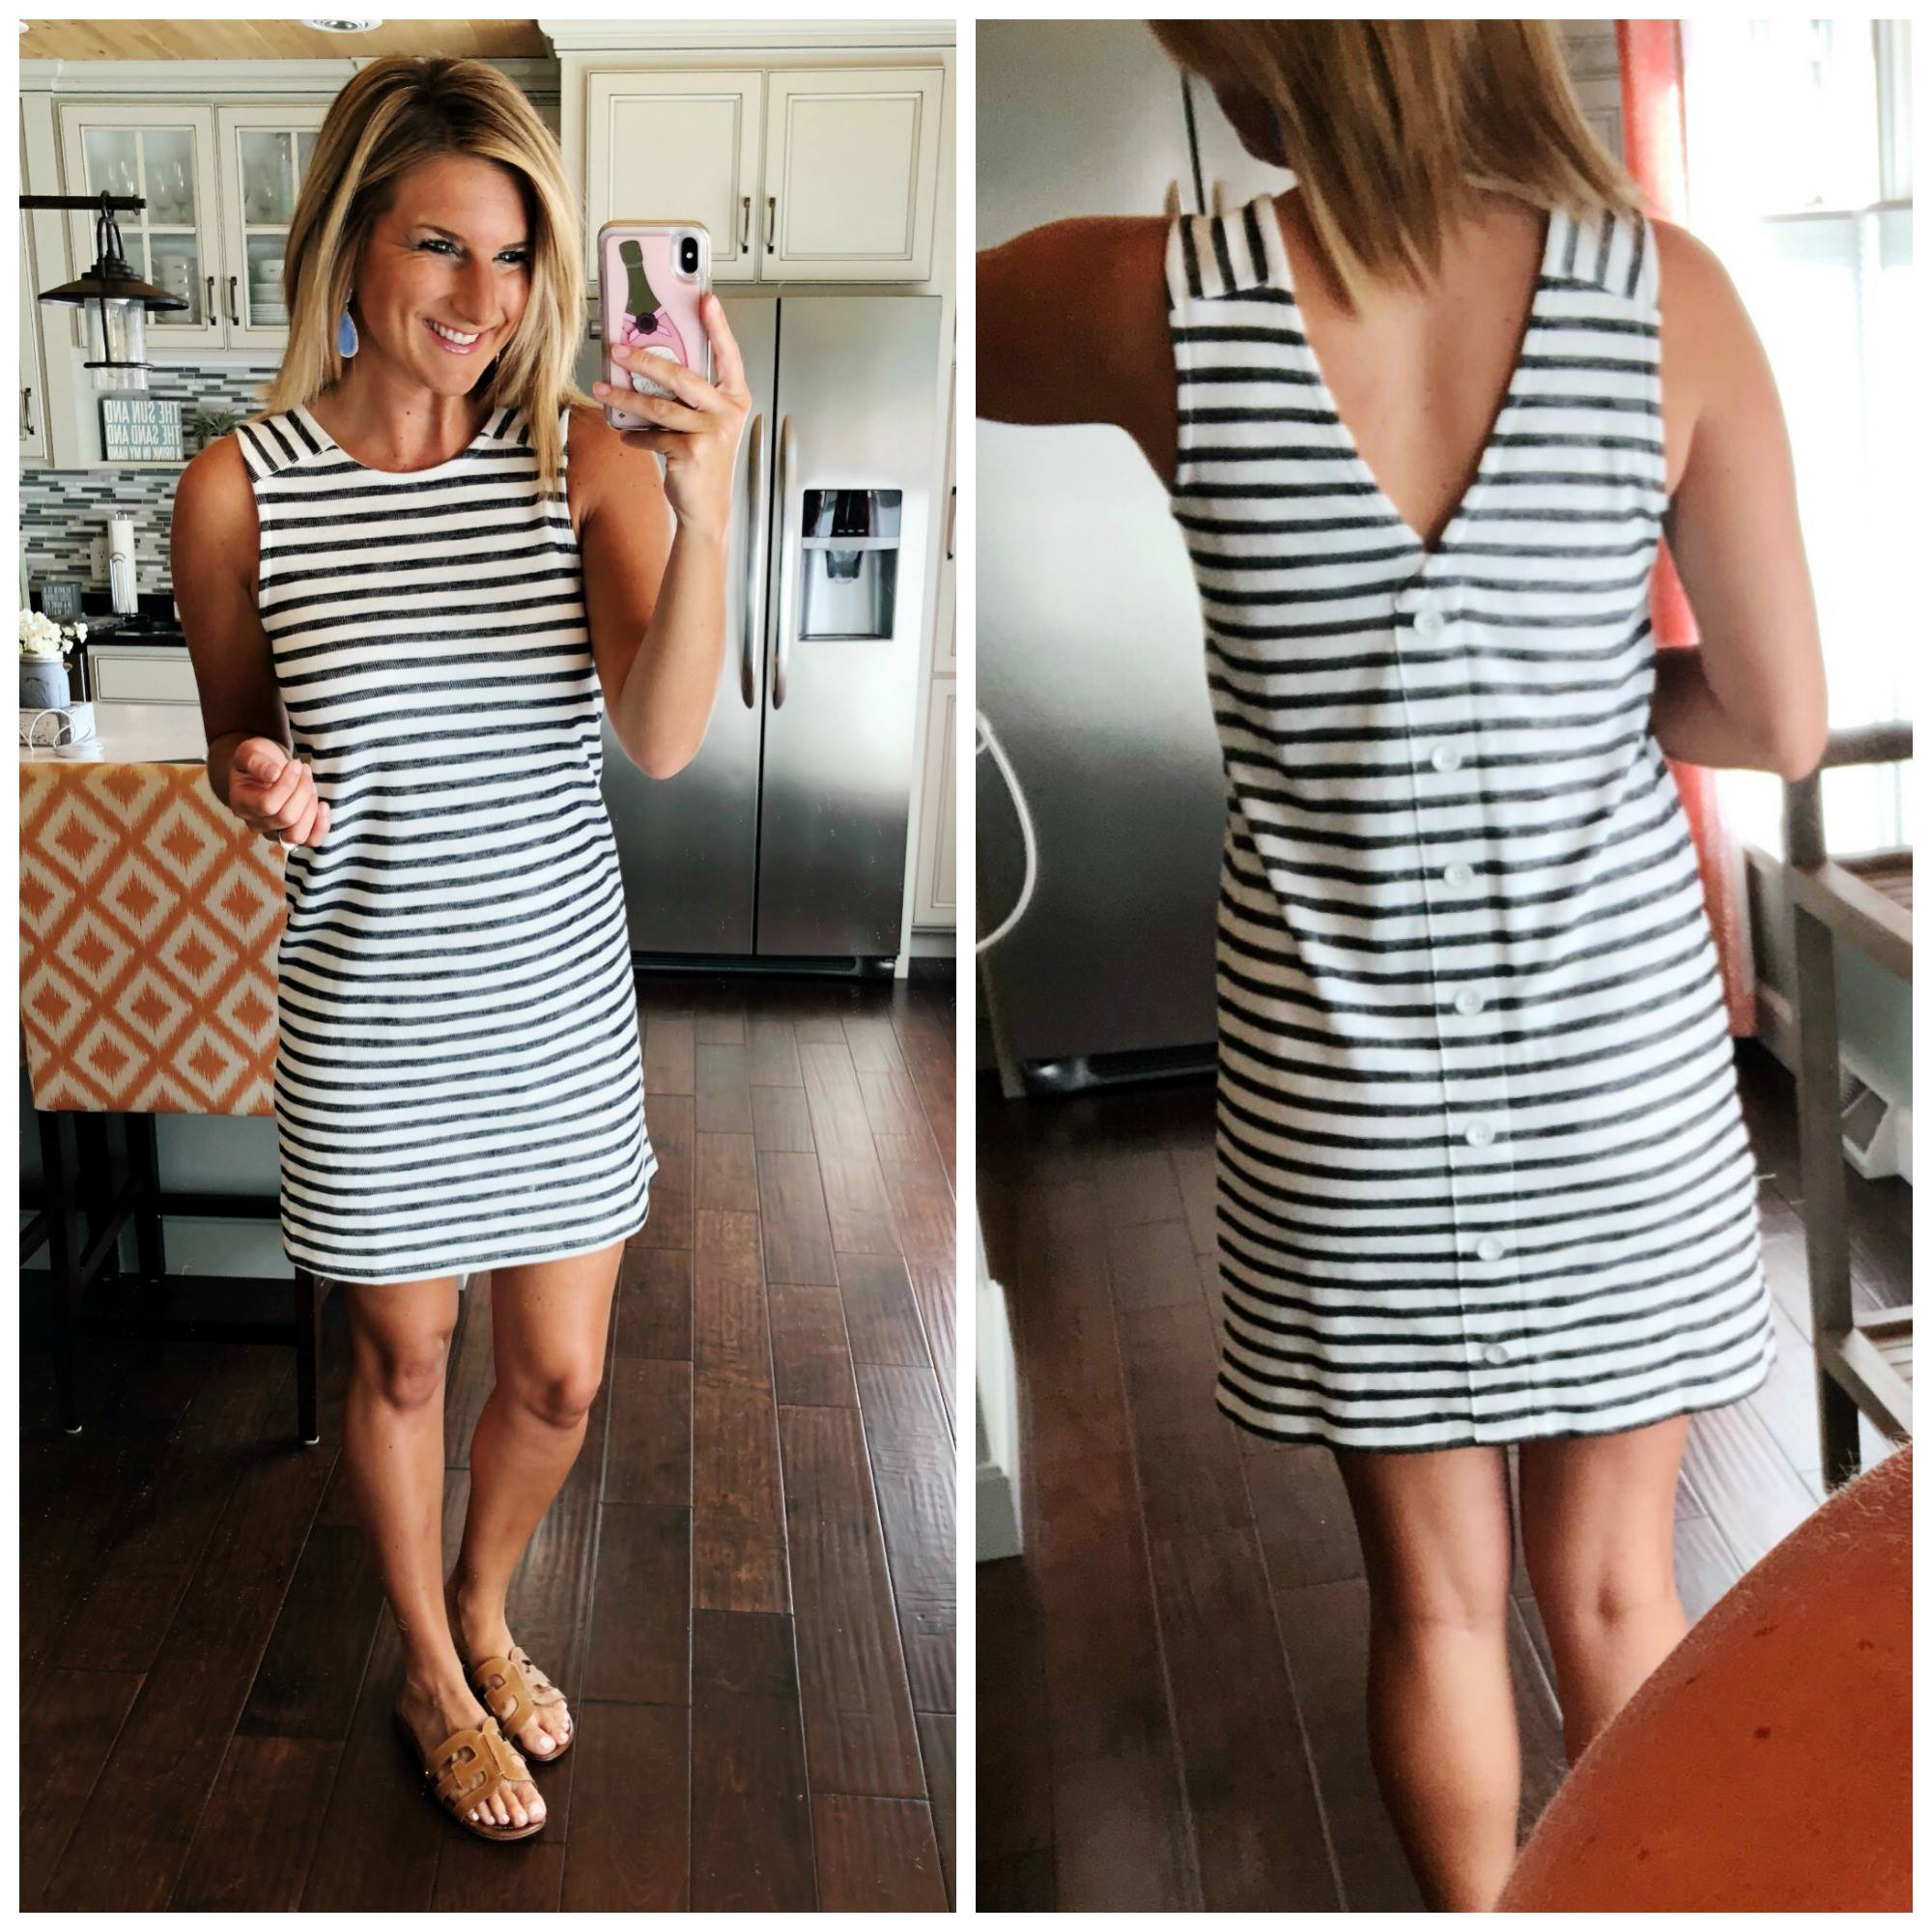 Summer Dress // Perfect Summer Dress for Casual Wedding, reunion or work // Outfit of the Day // Casual Summer Dress